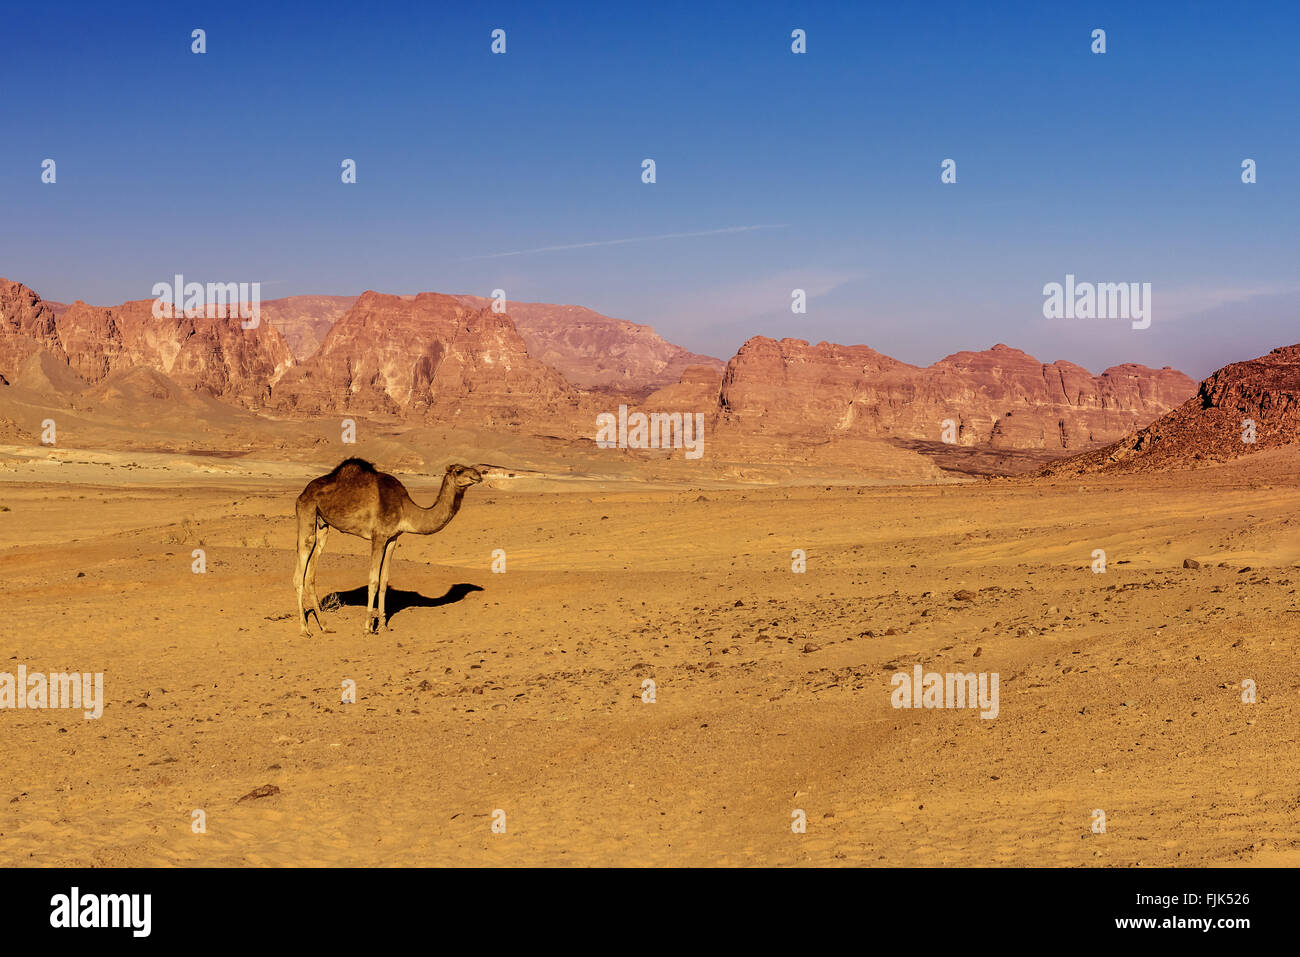 camel on sand in hot Sinai desert Egypt - Stock Image